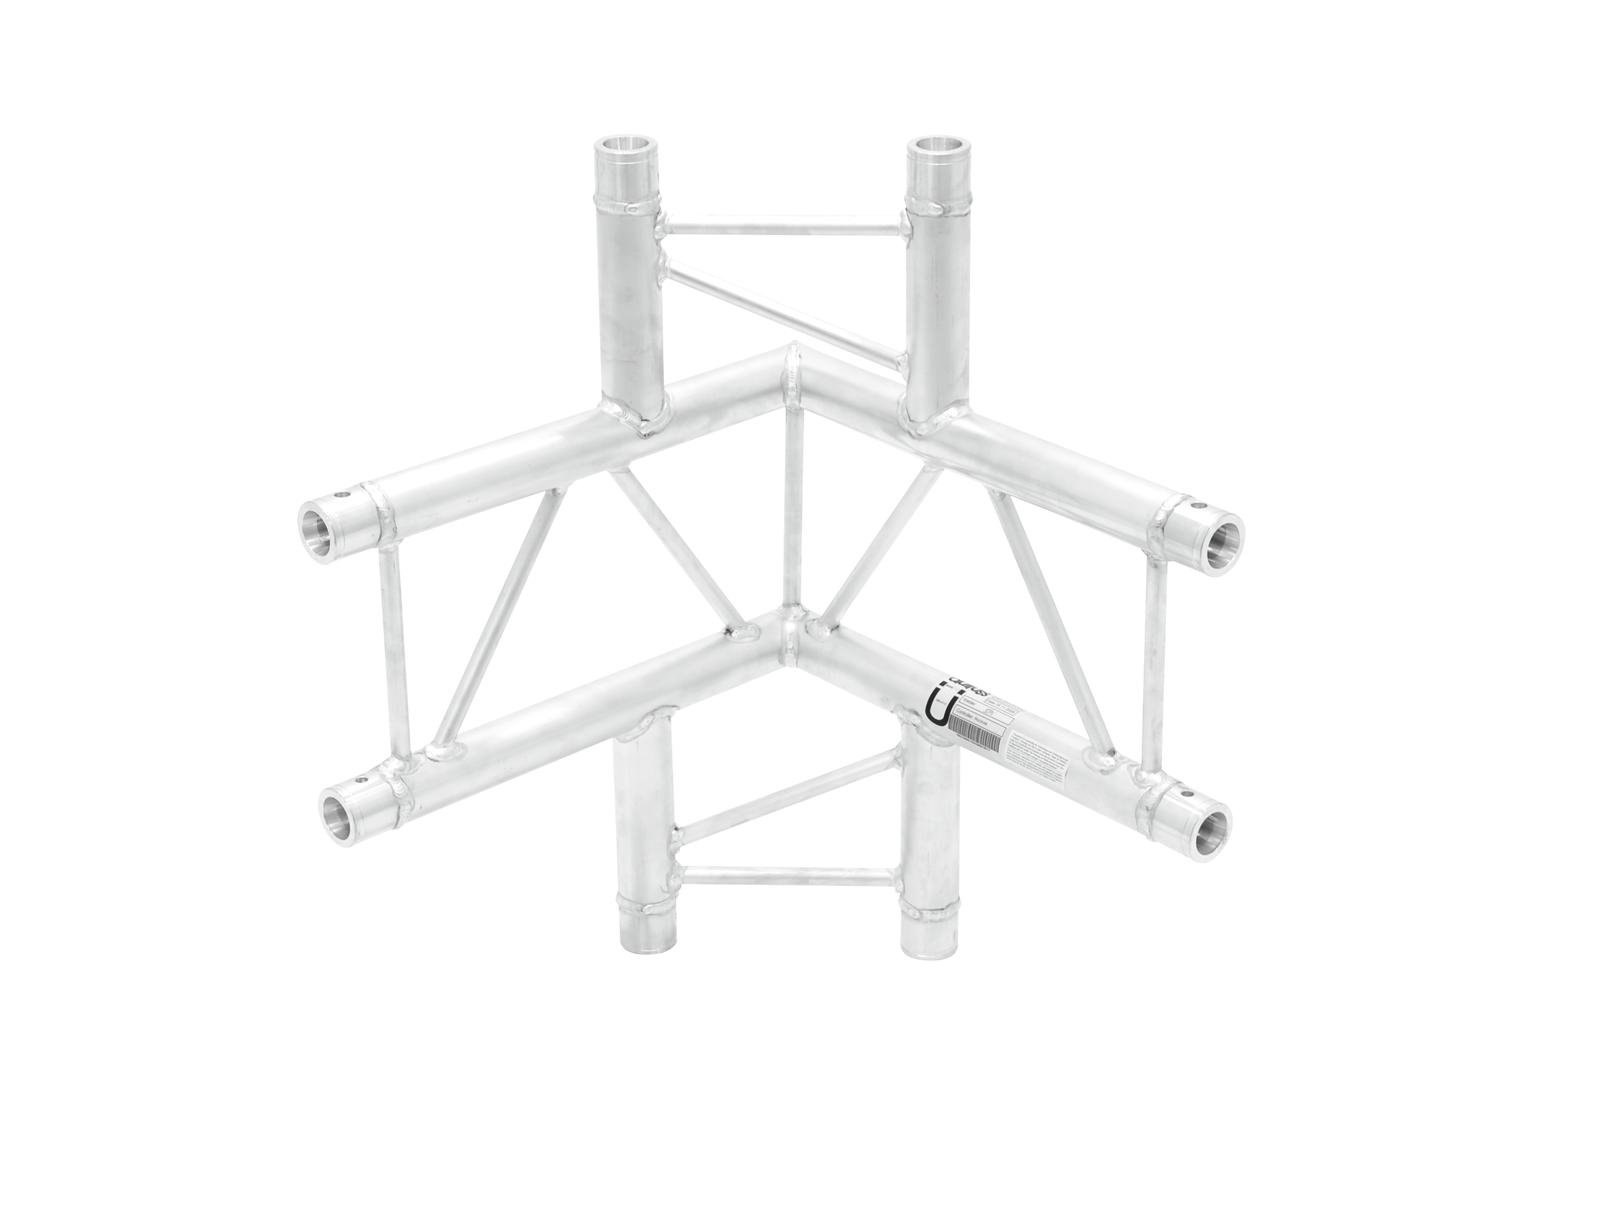 ALUTRUSS BILOCK E-GL22 C44-V 4